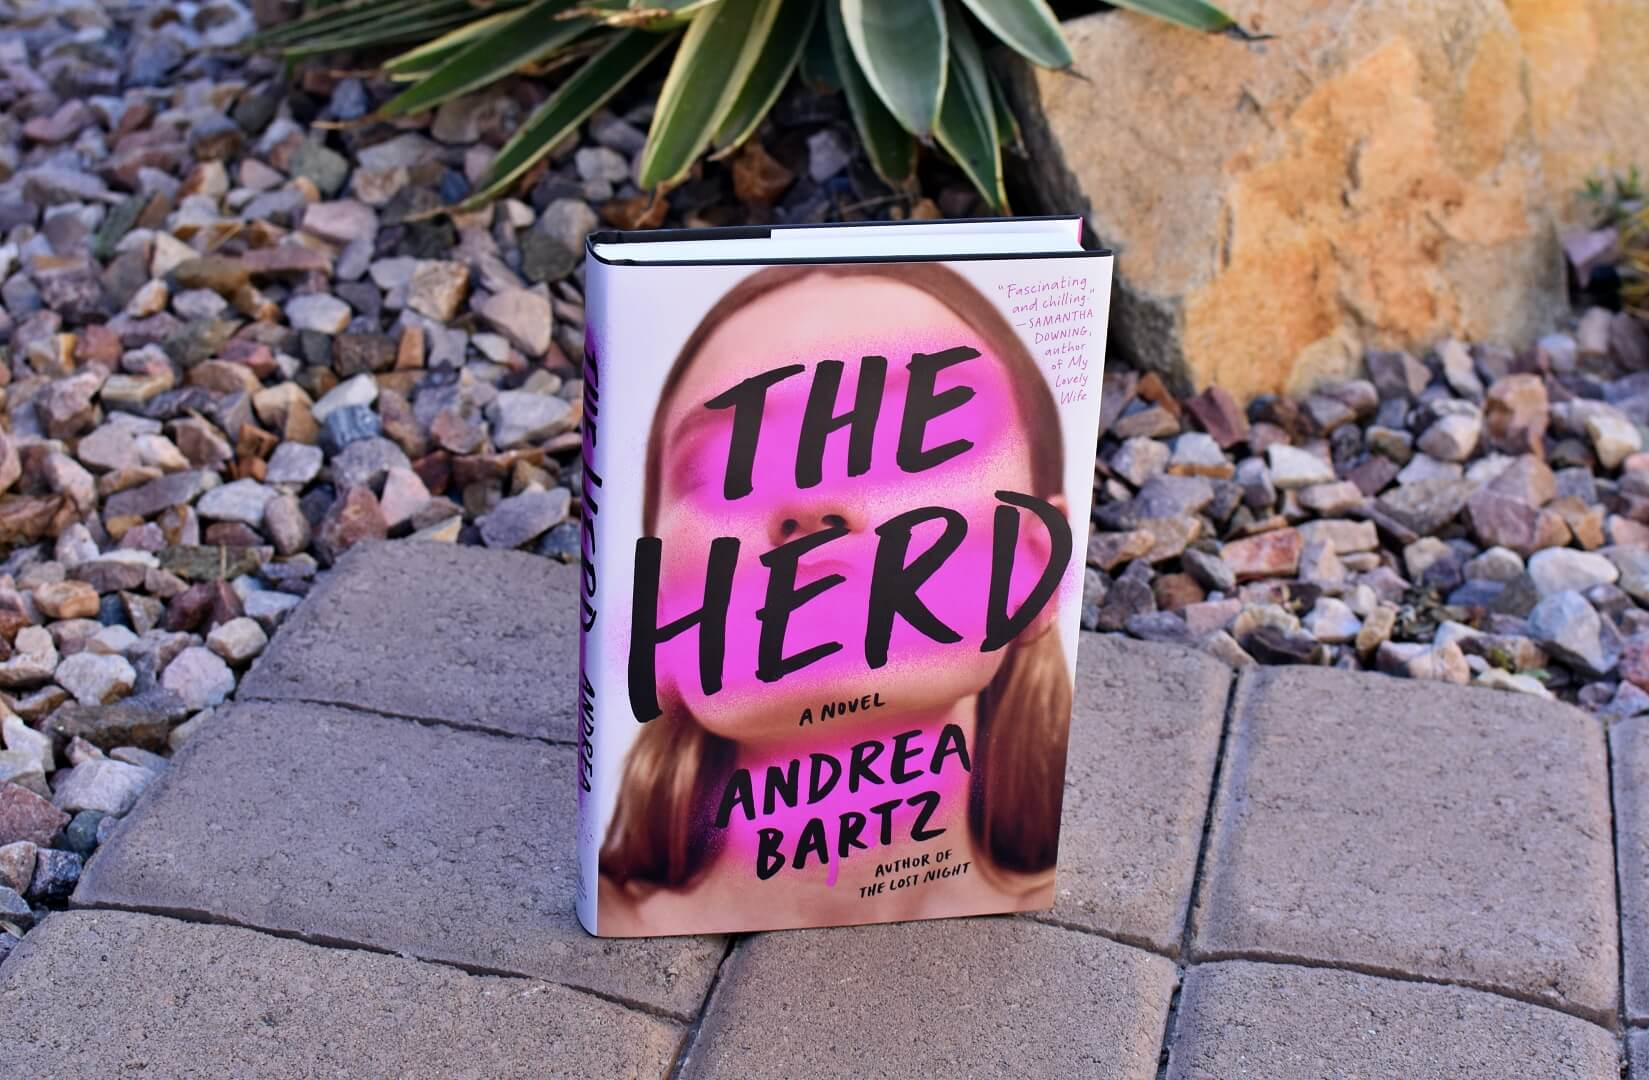 book club questions for the herd - book club chat